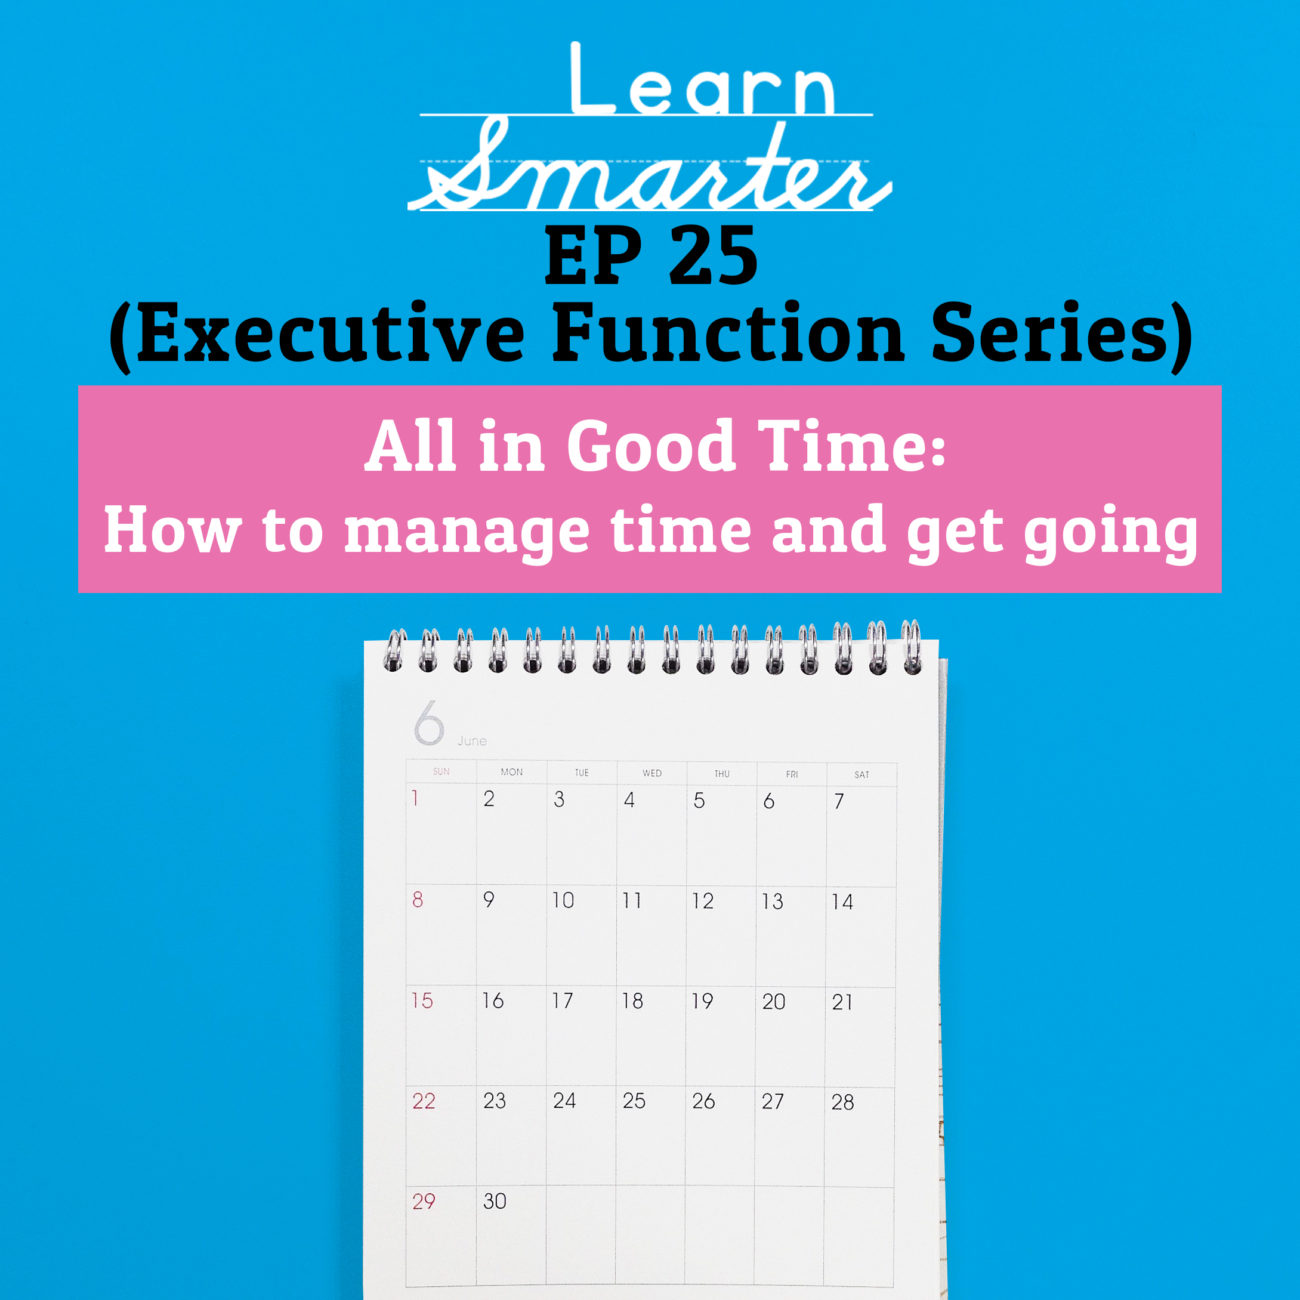 25: All in Good Time: How to manage time and get going